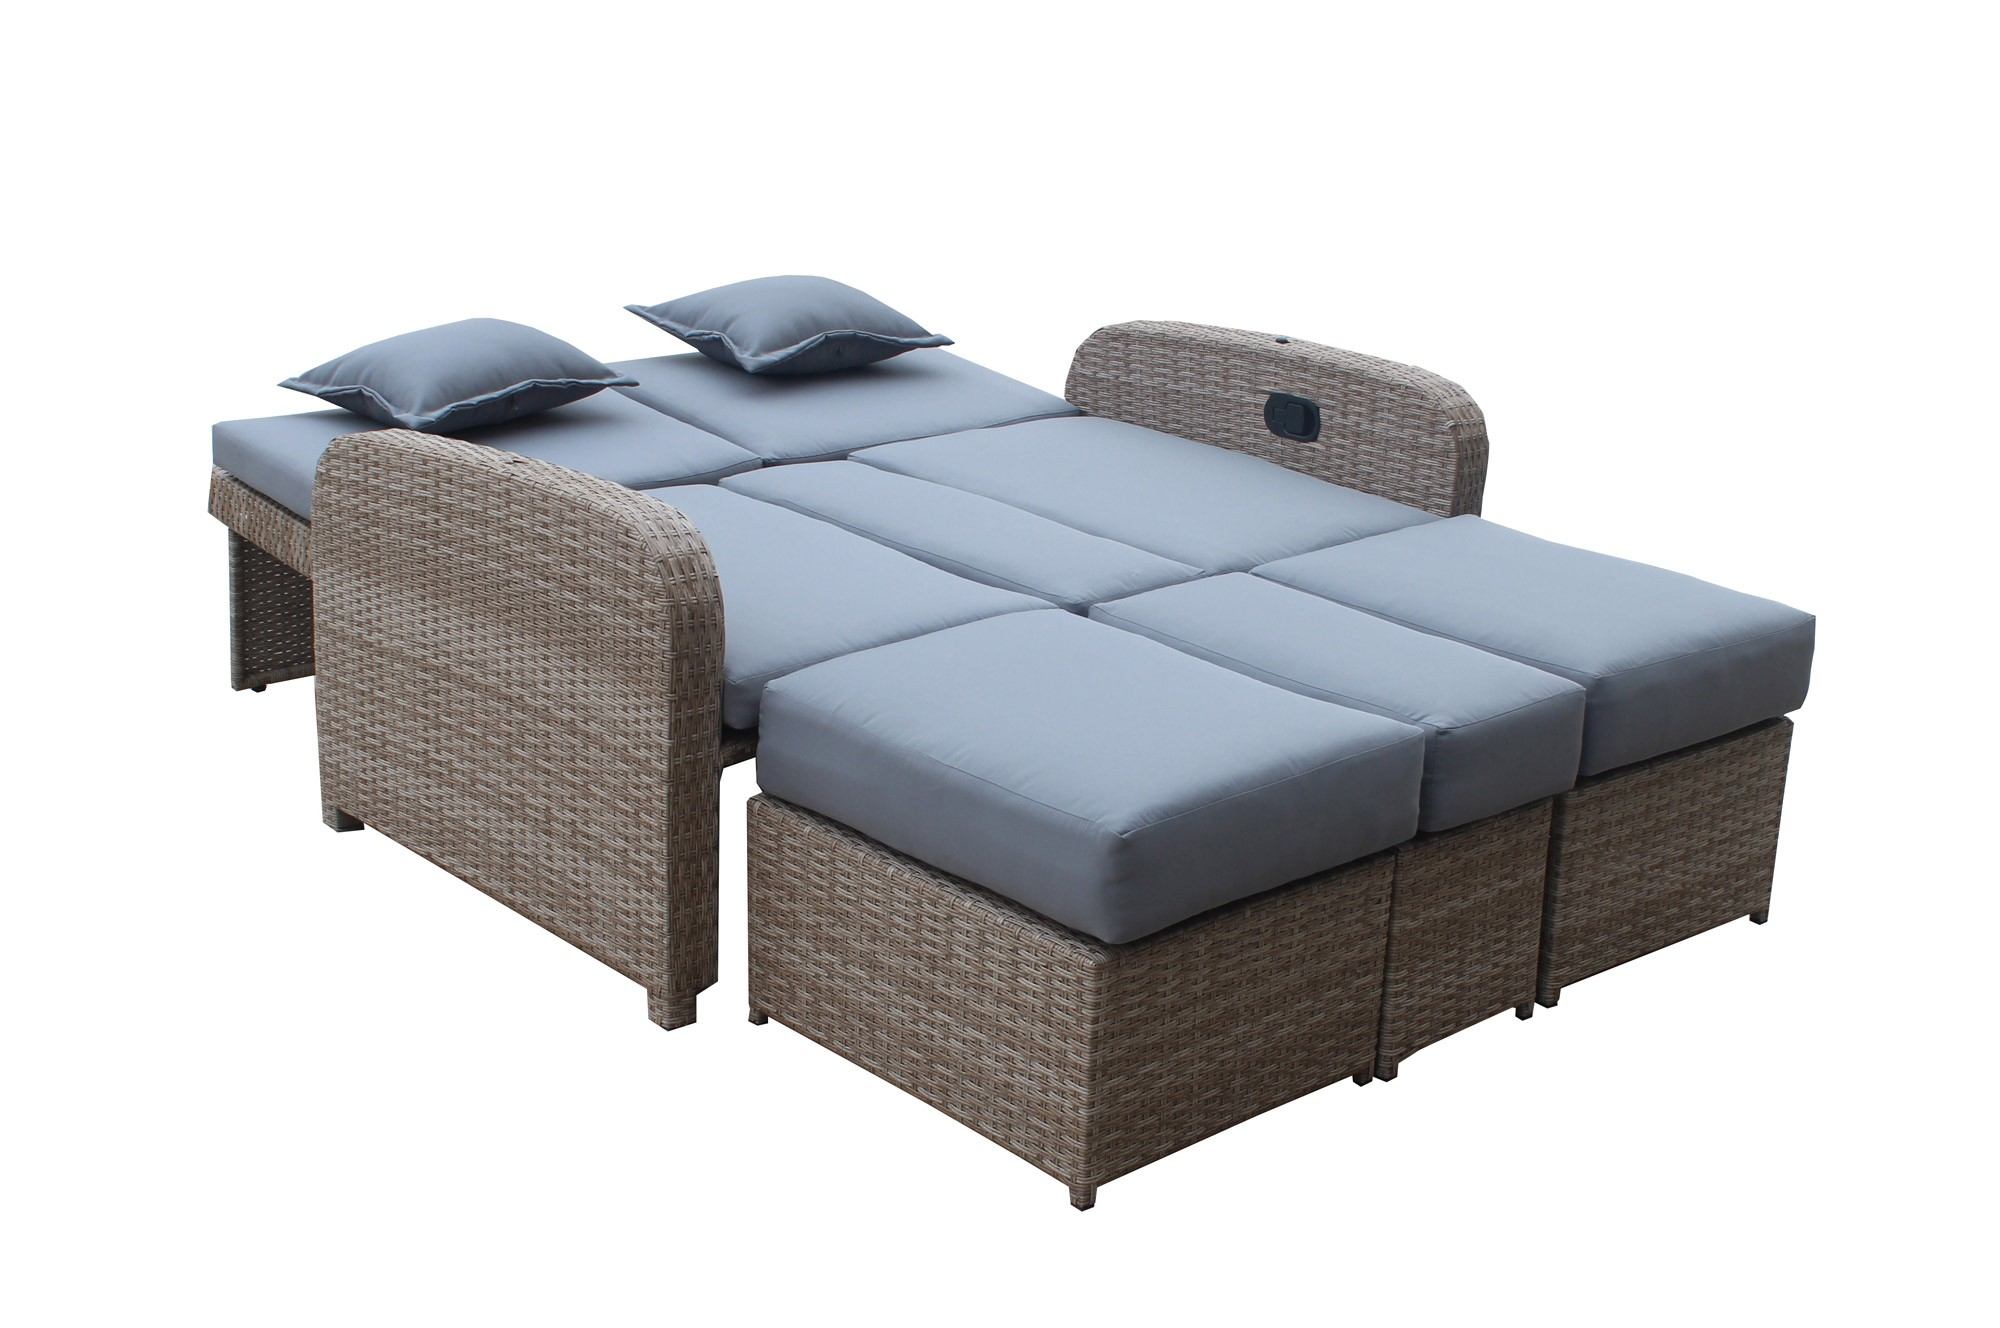 rattan liege mit dach vidaxl sonnenliege poly rattan loungeliege relaxliege gartenliege liege. Black Bedroom Furniture Sets. Home Design Ideas